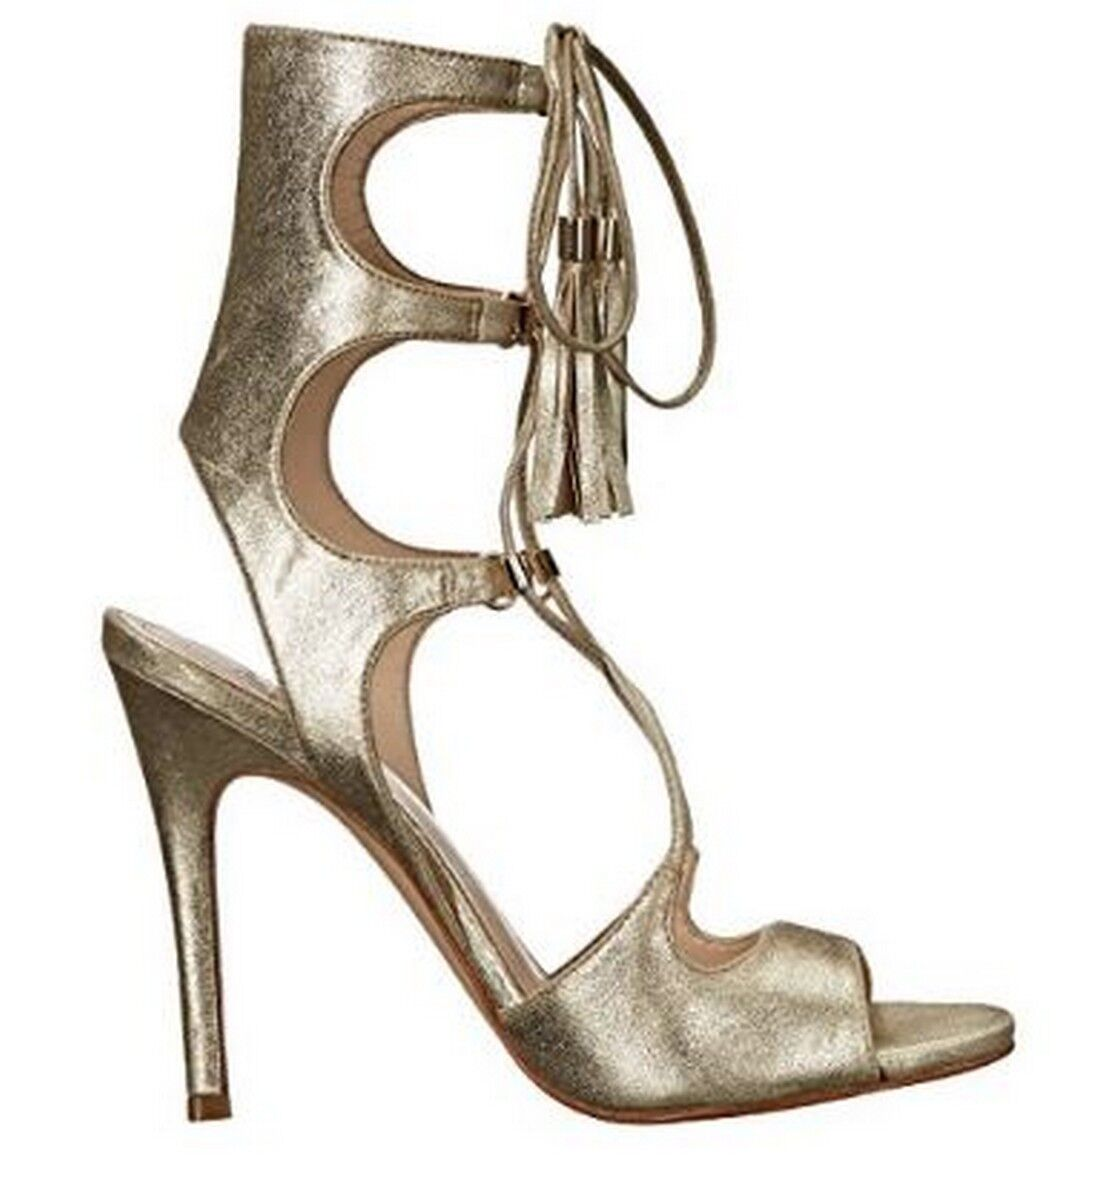 Women's Marc Fisher LARSA Gladiator Heels Dress Sandals Leather Gold